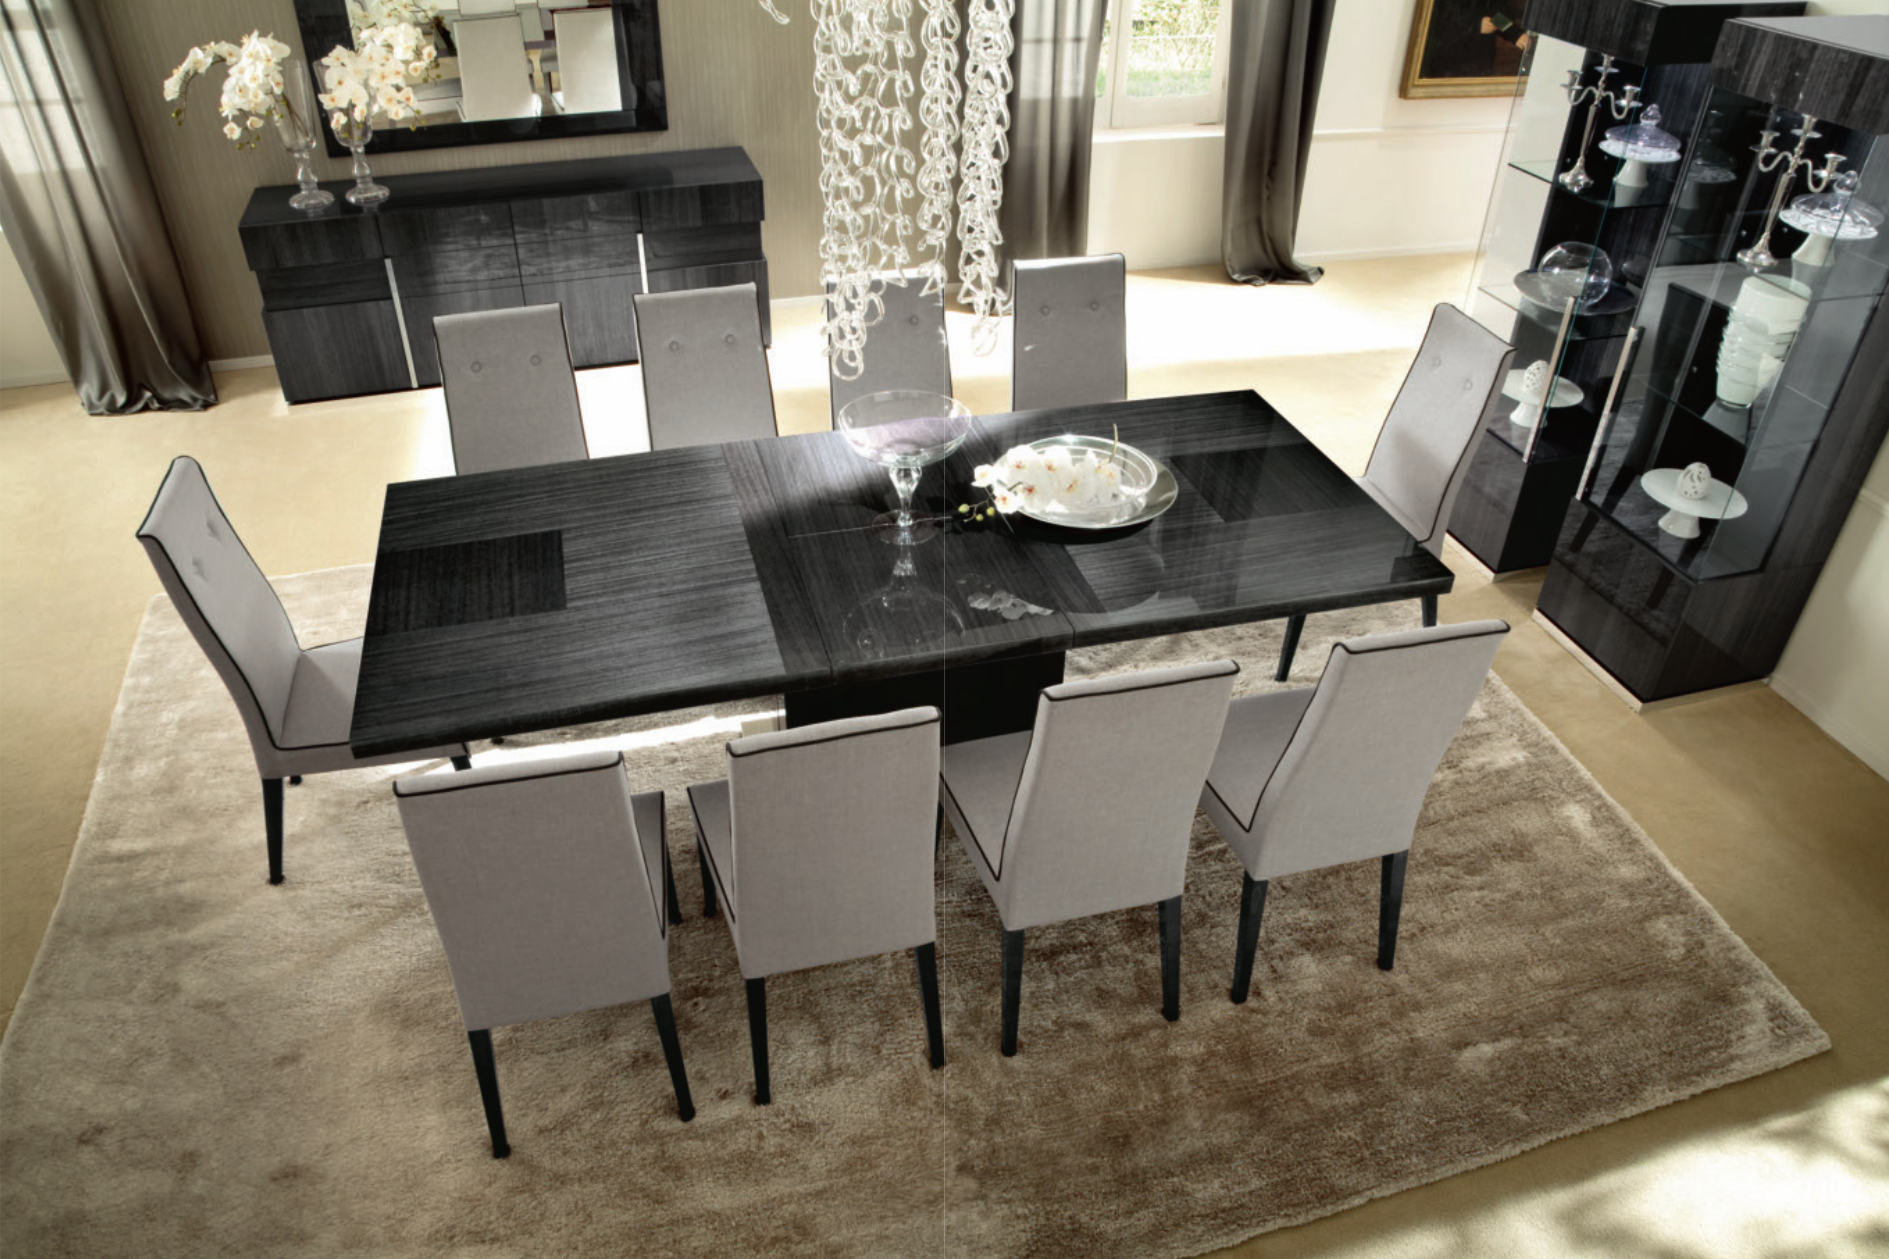 Contemporary furniture stores in nj - Modern Furniture Stores New Jersey Modern Furniture Contemporary San Francisco Furniture Stores Montecarlo Dining Room Collection